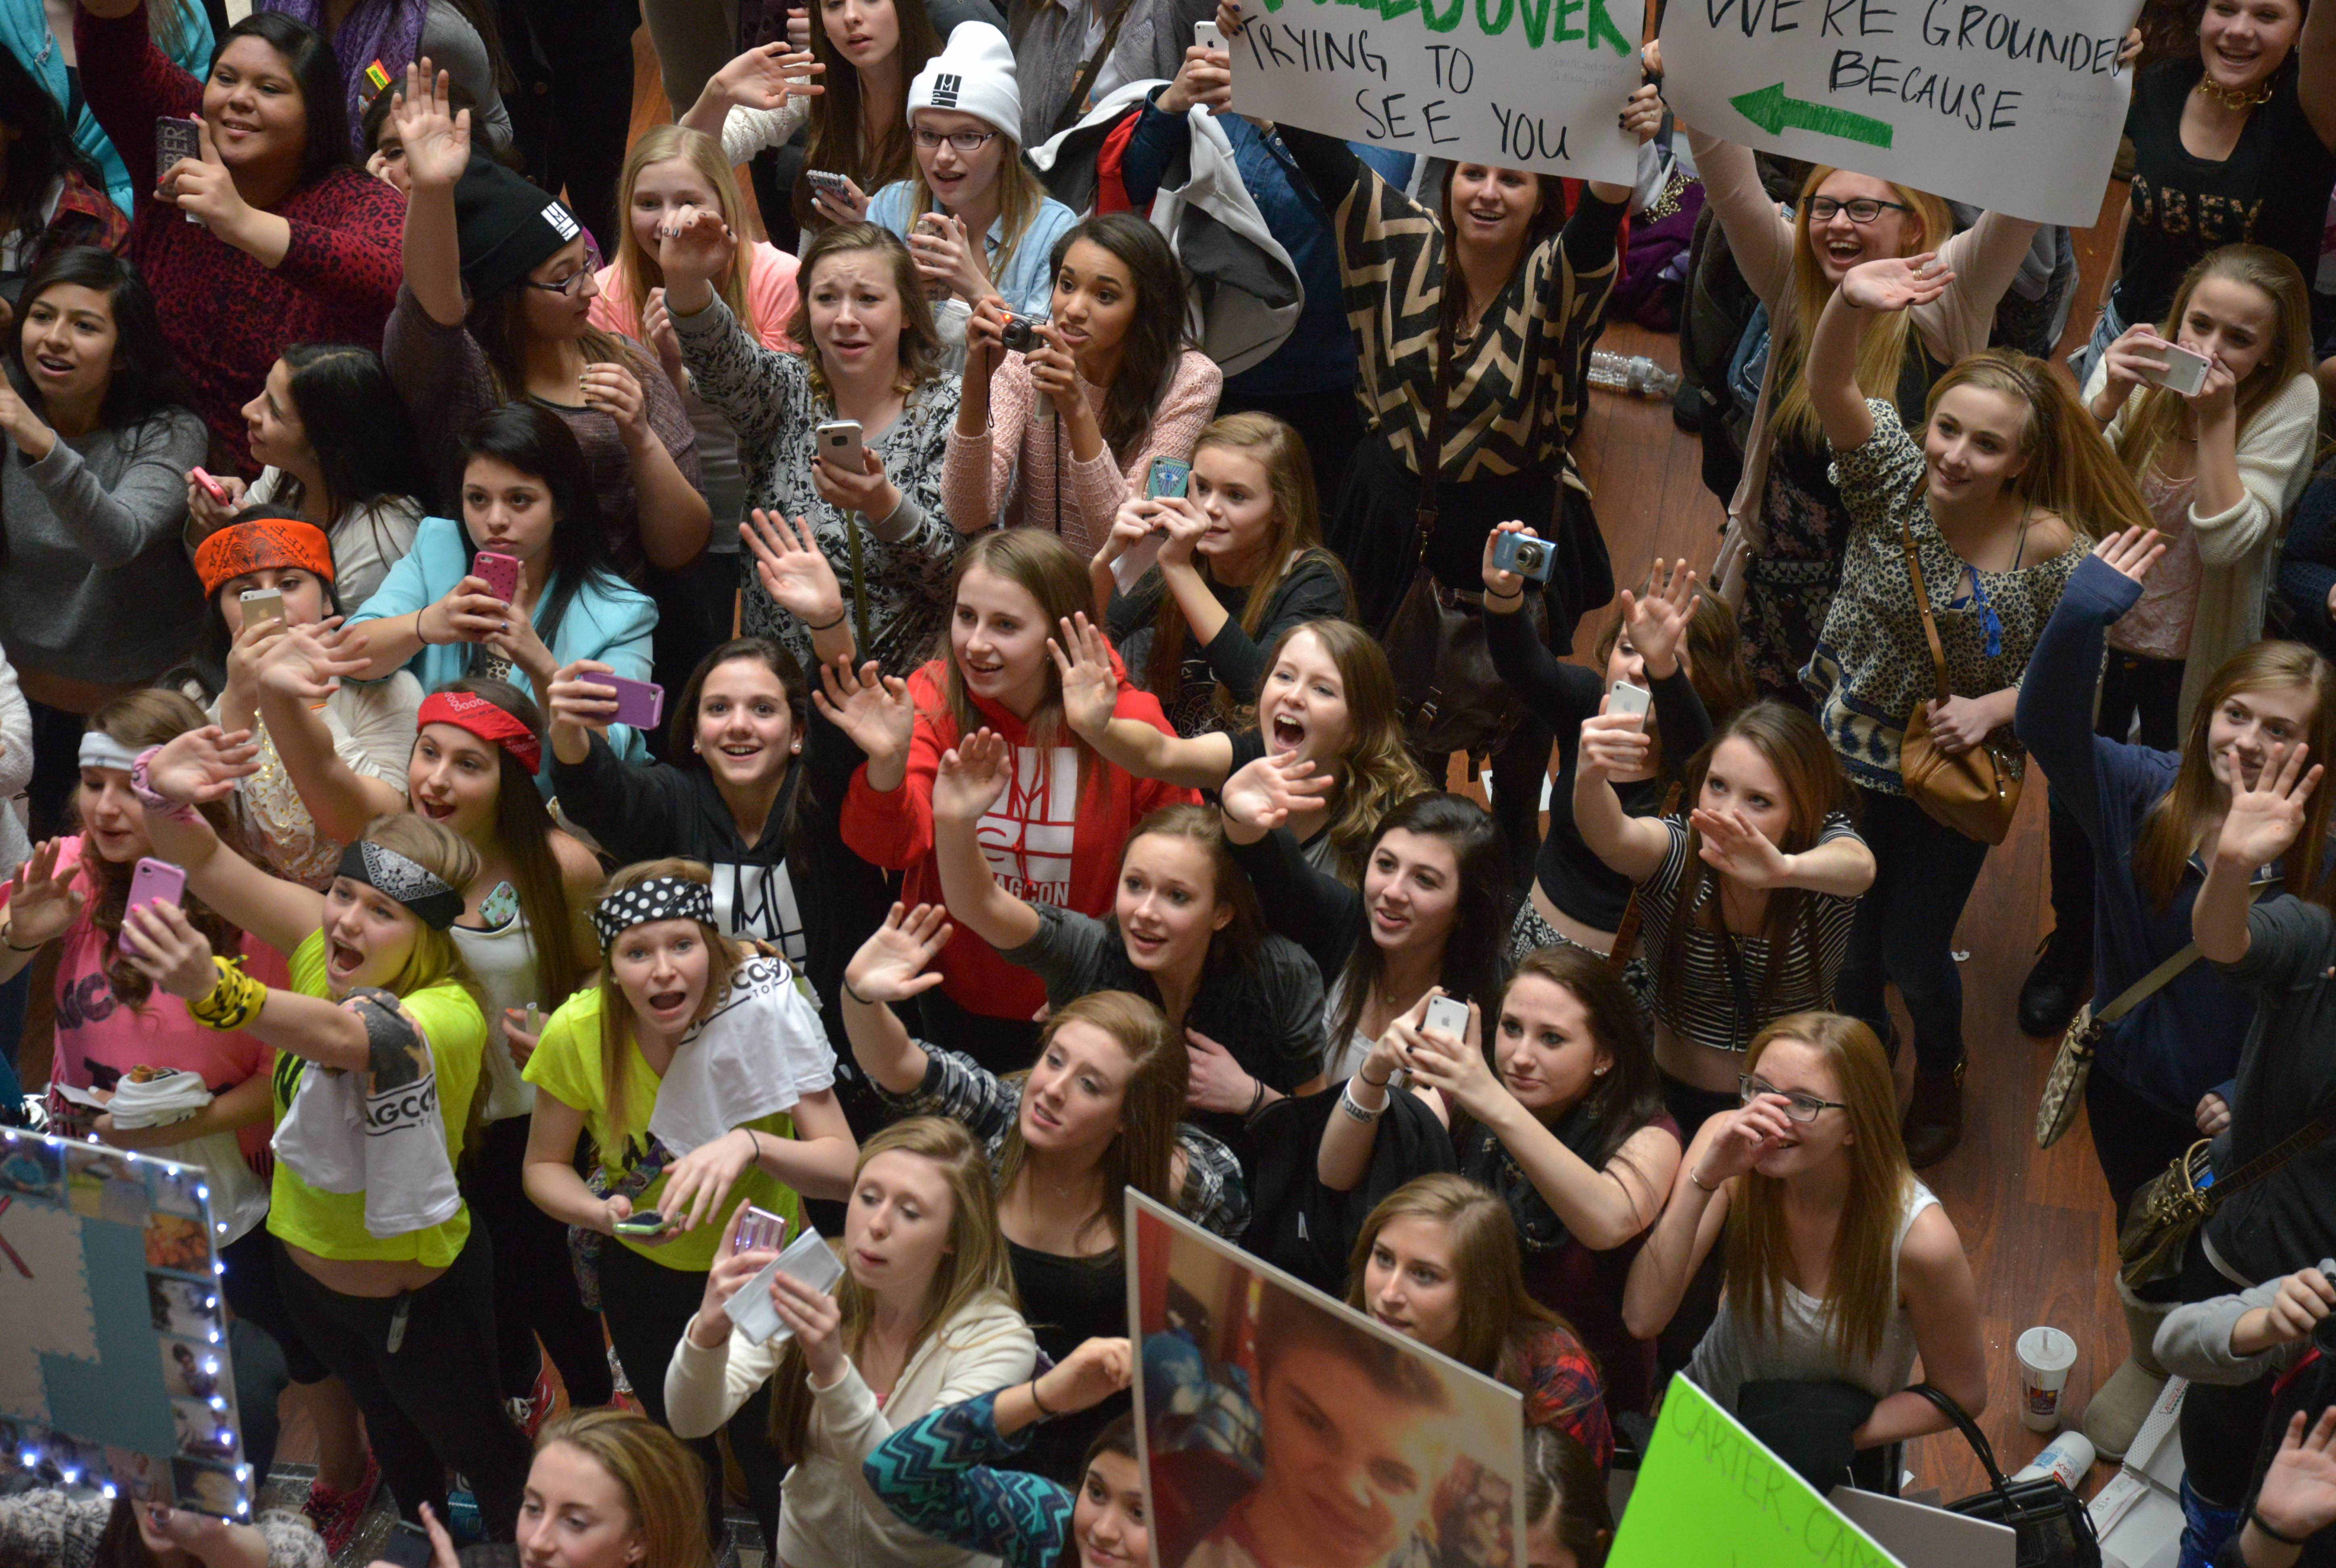 The teenage boys who have become social media stars with their 6-second videos on Vine were at the Westin Chicago in Itasca to meet their fans. These young girls were waiting their turn to meet them.